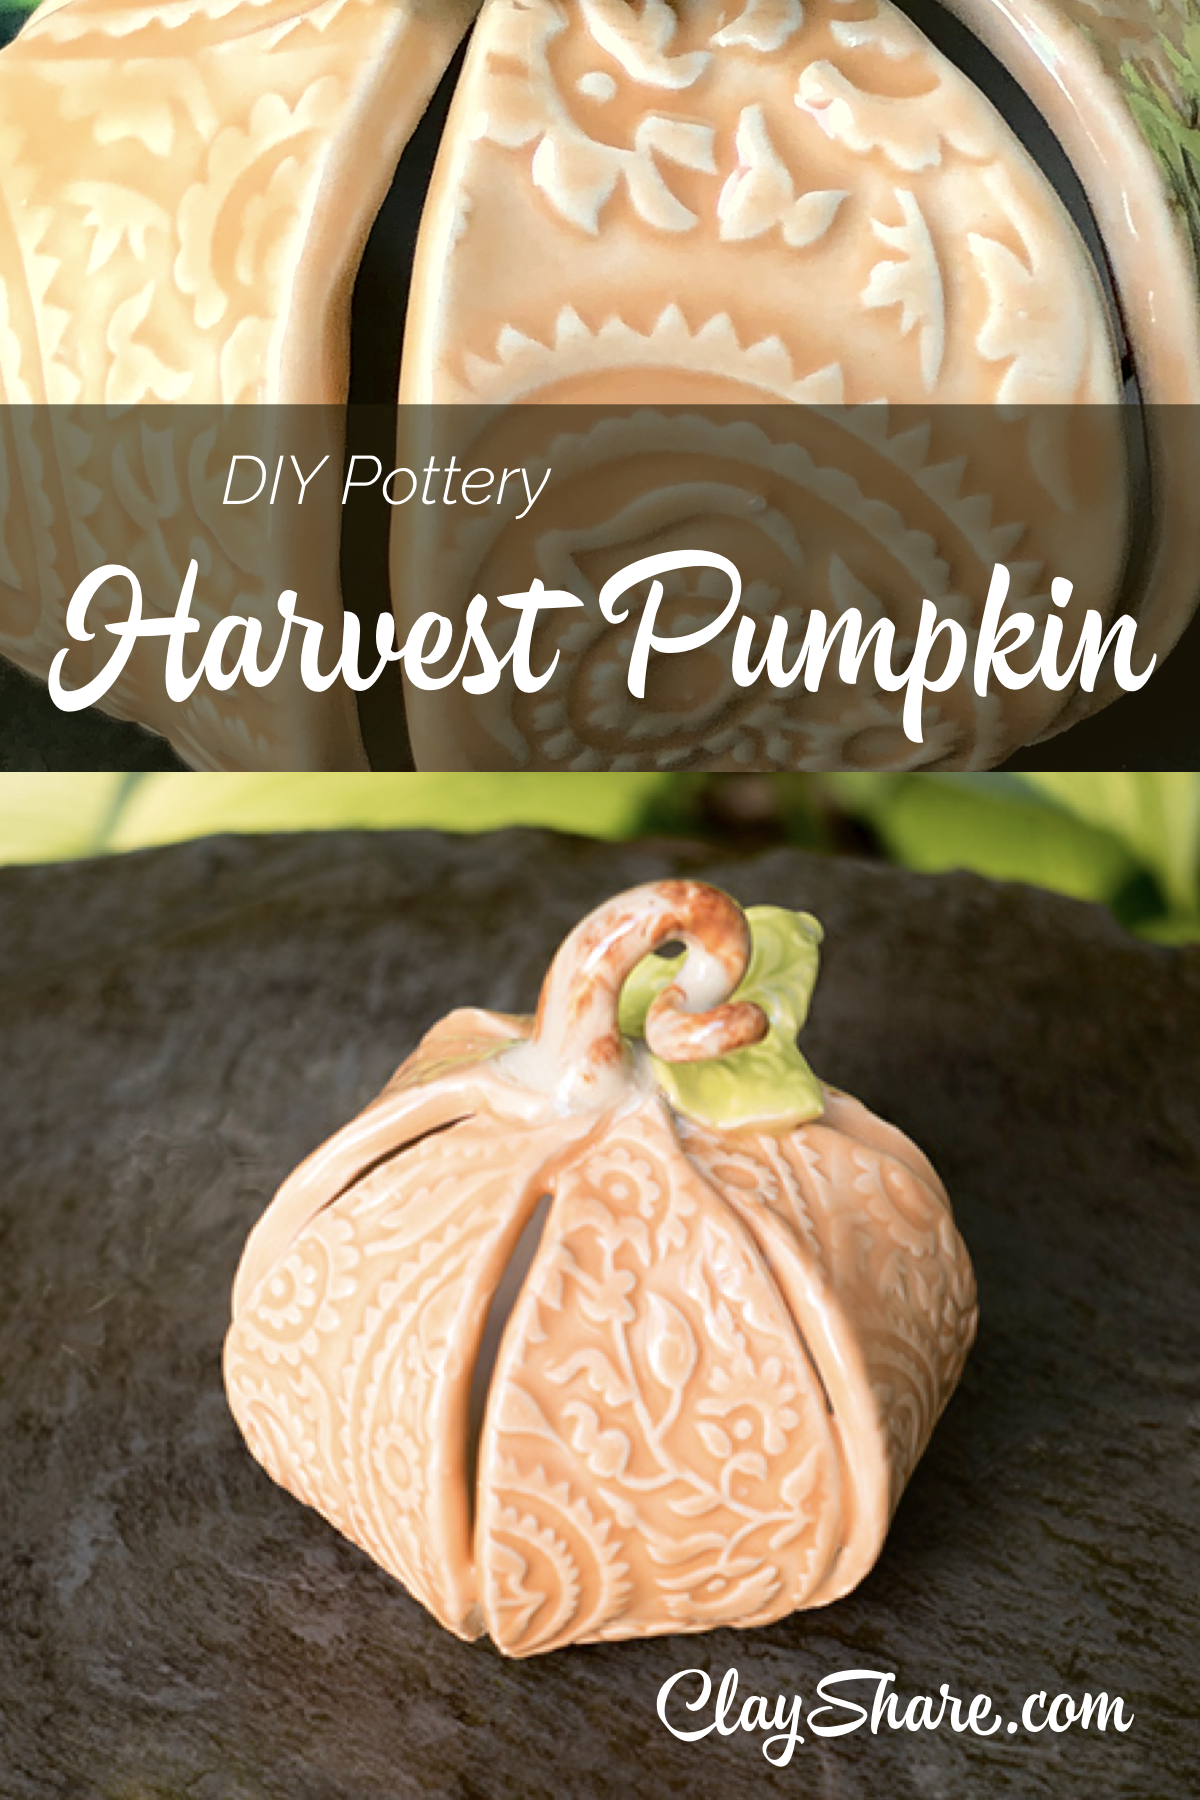 Make your own super sweet harvest Pumpkin with our step by step pottery tutorial. ClayShare has over 180 online pottery classes, sign up for free today! #potteryclasses